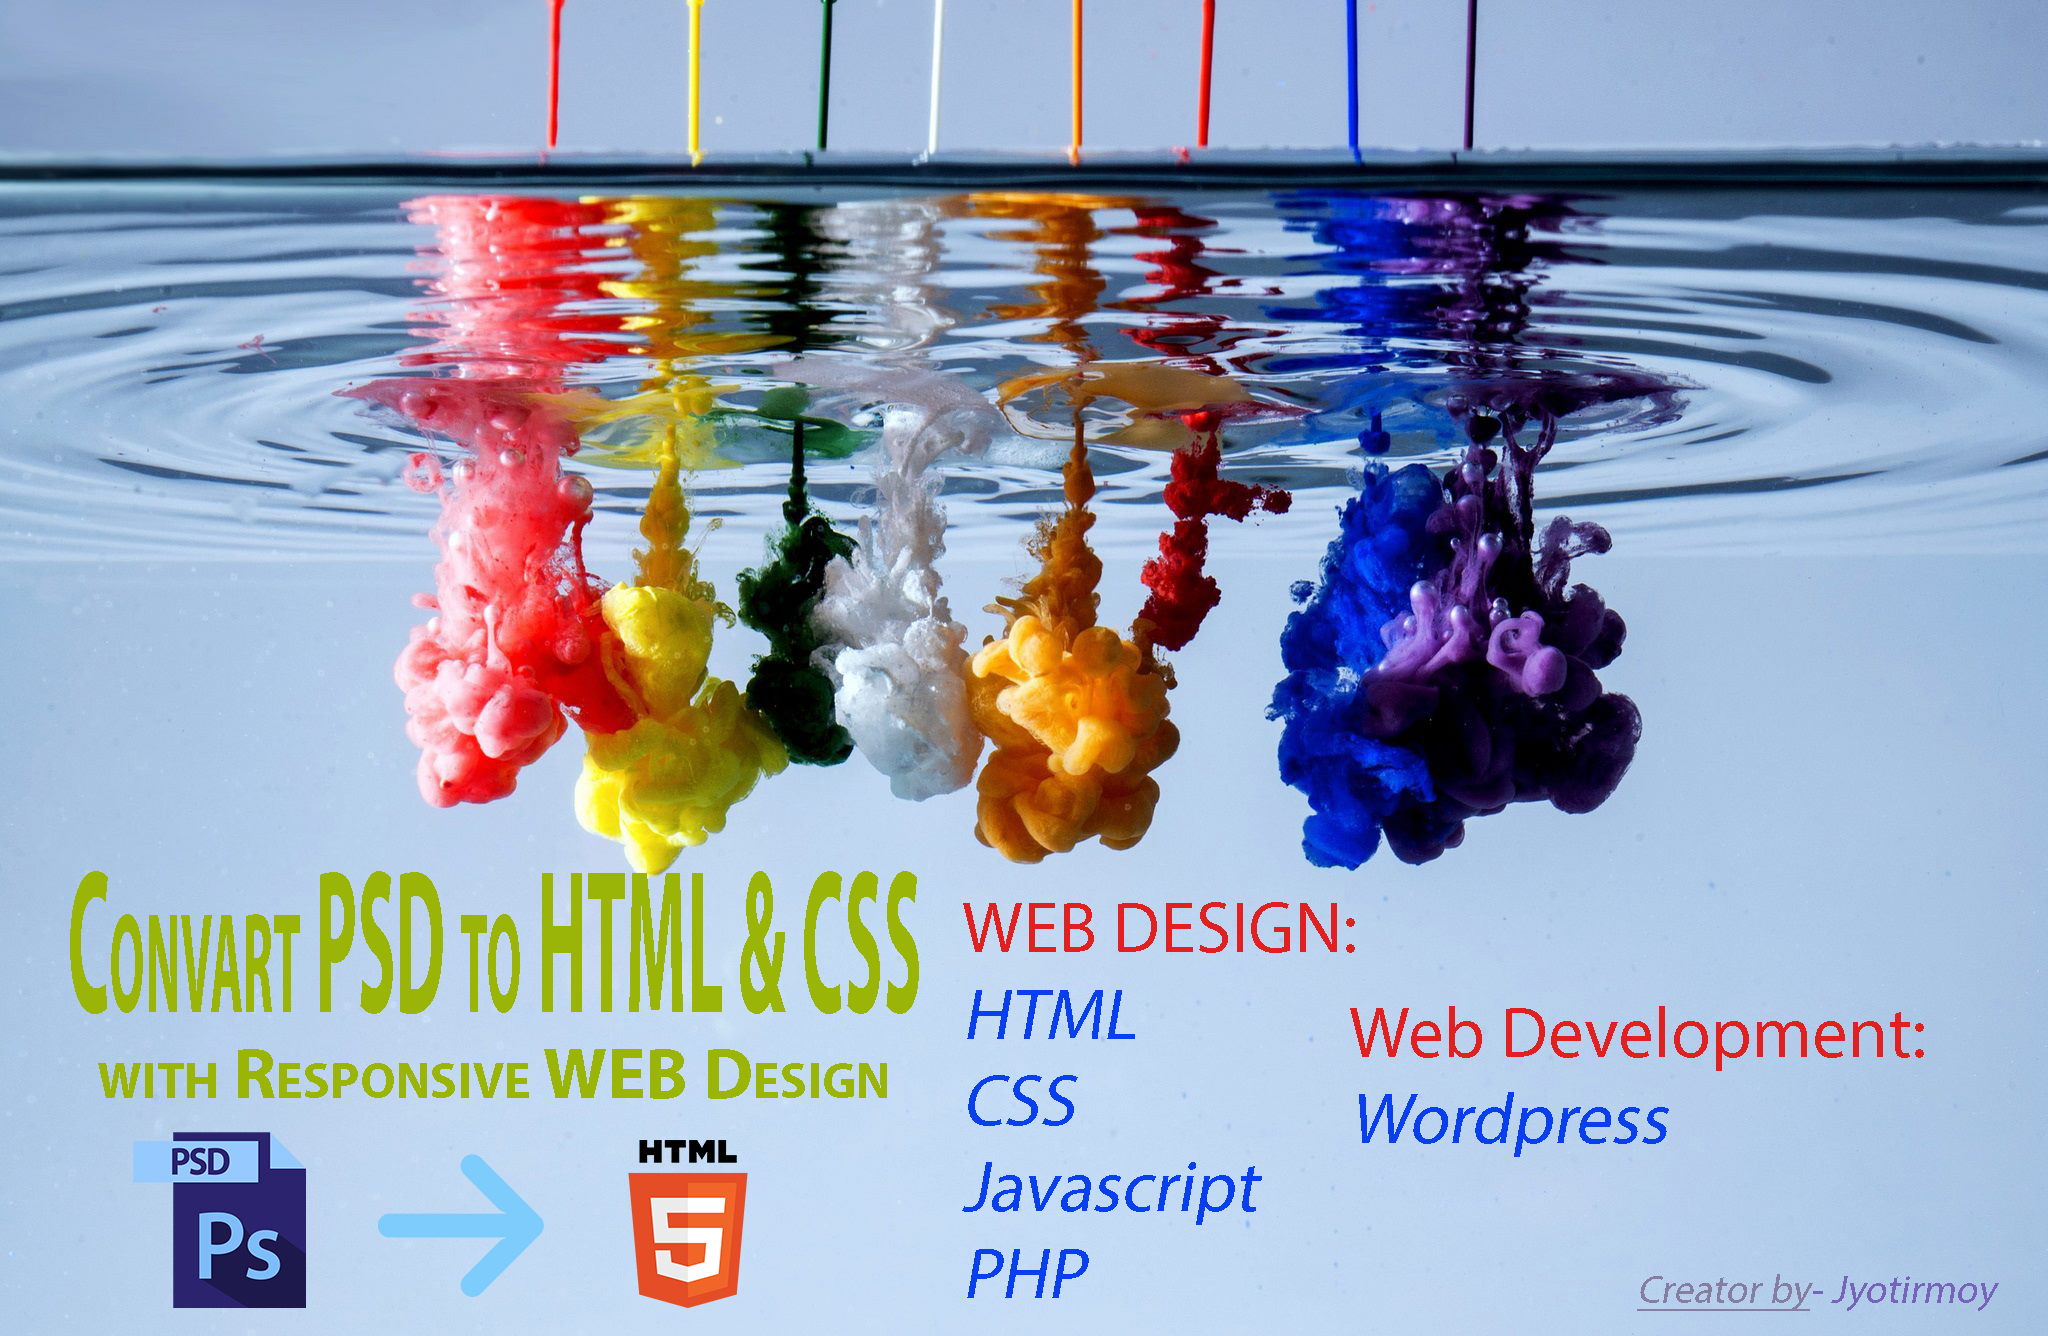 I Will convert PSD to HTML5 with CSS3 within 48 hours.